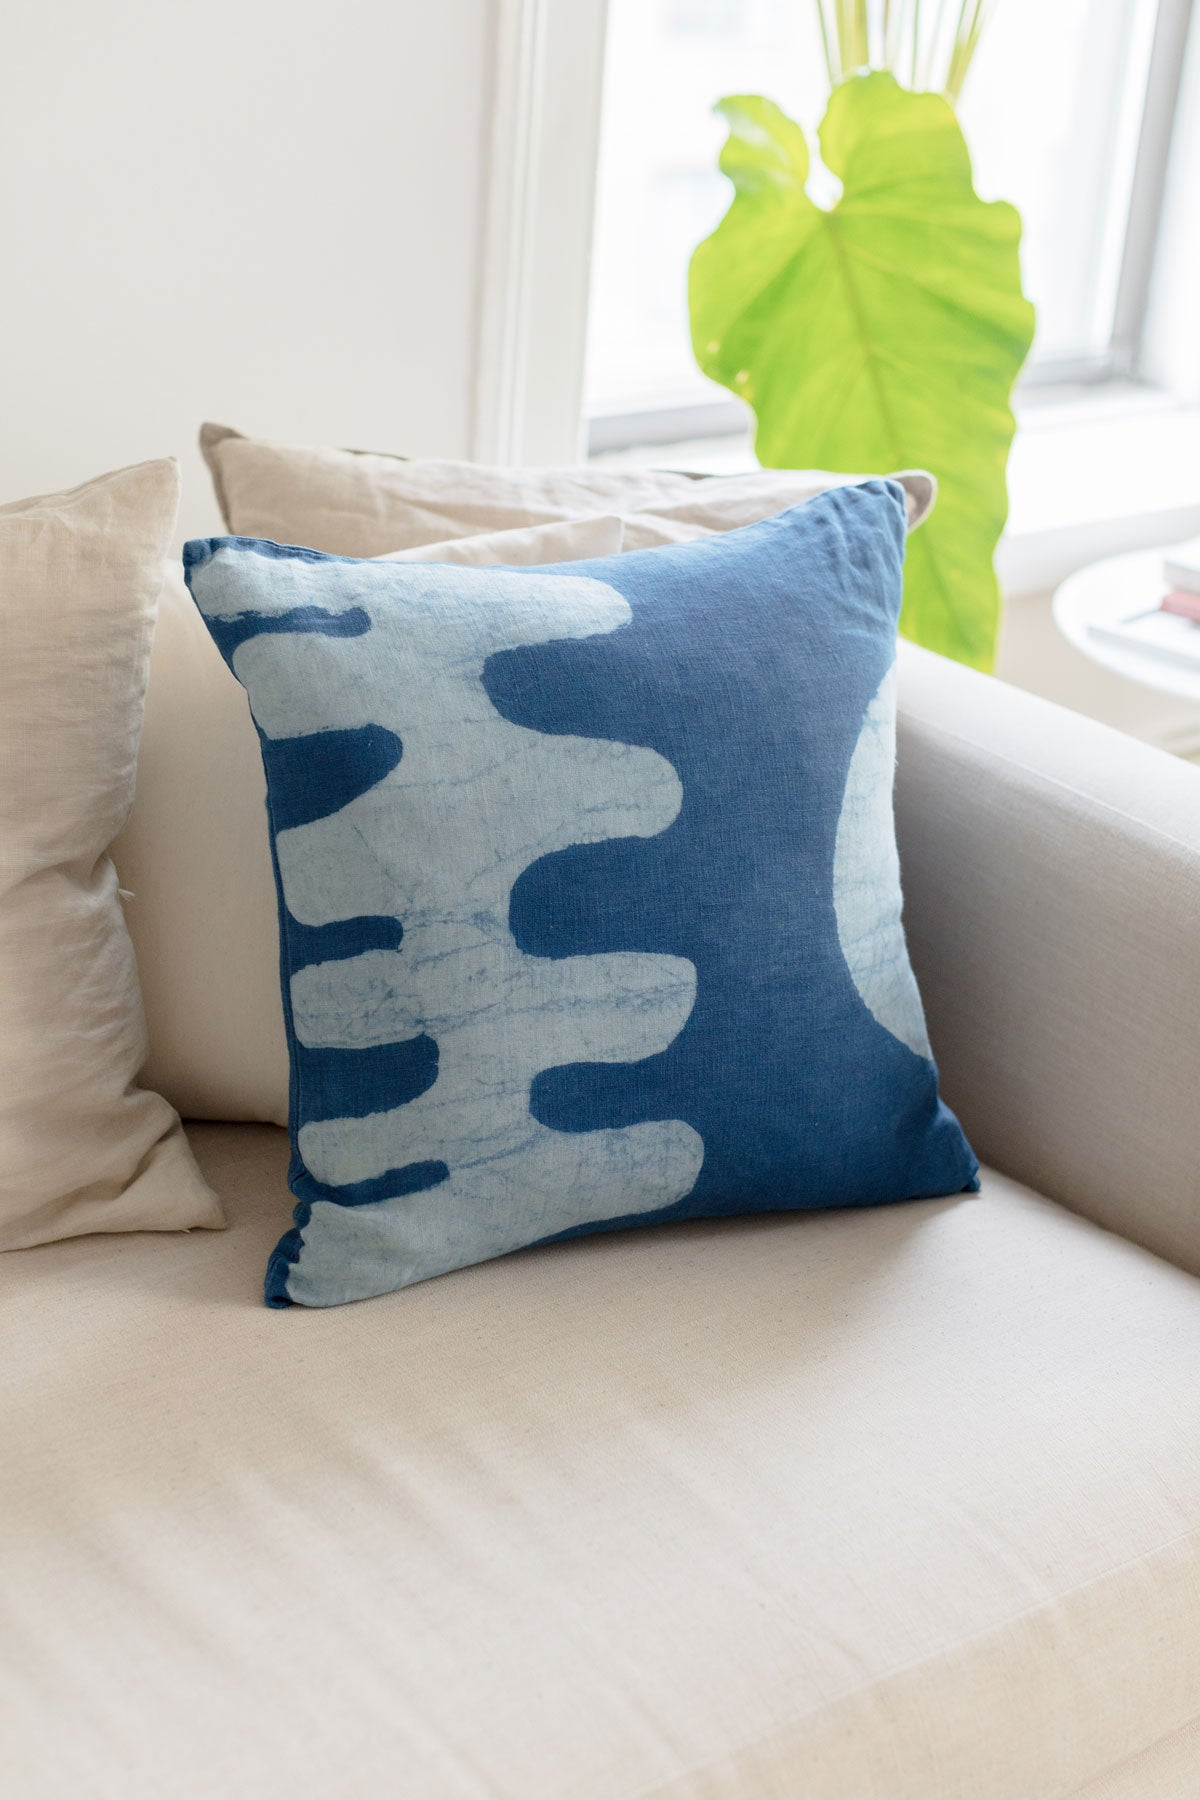 Blue Matisse inspired accent pillow by SUNDAY/MONDAY. Hand block printed and hand dyed with natural indigo. Featuring bold graphic cut out shapes.